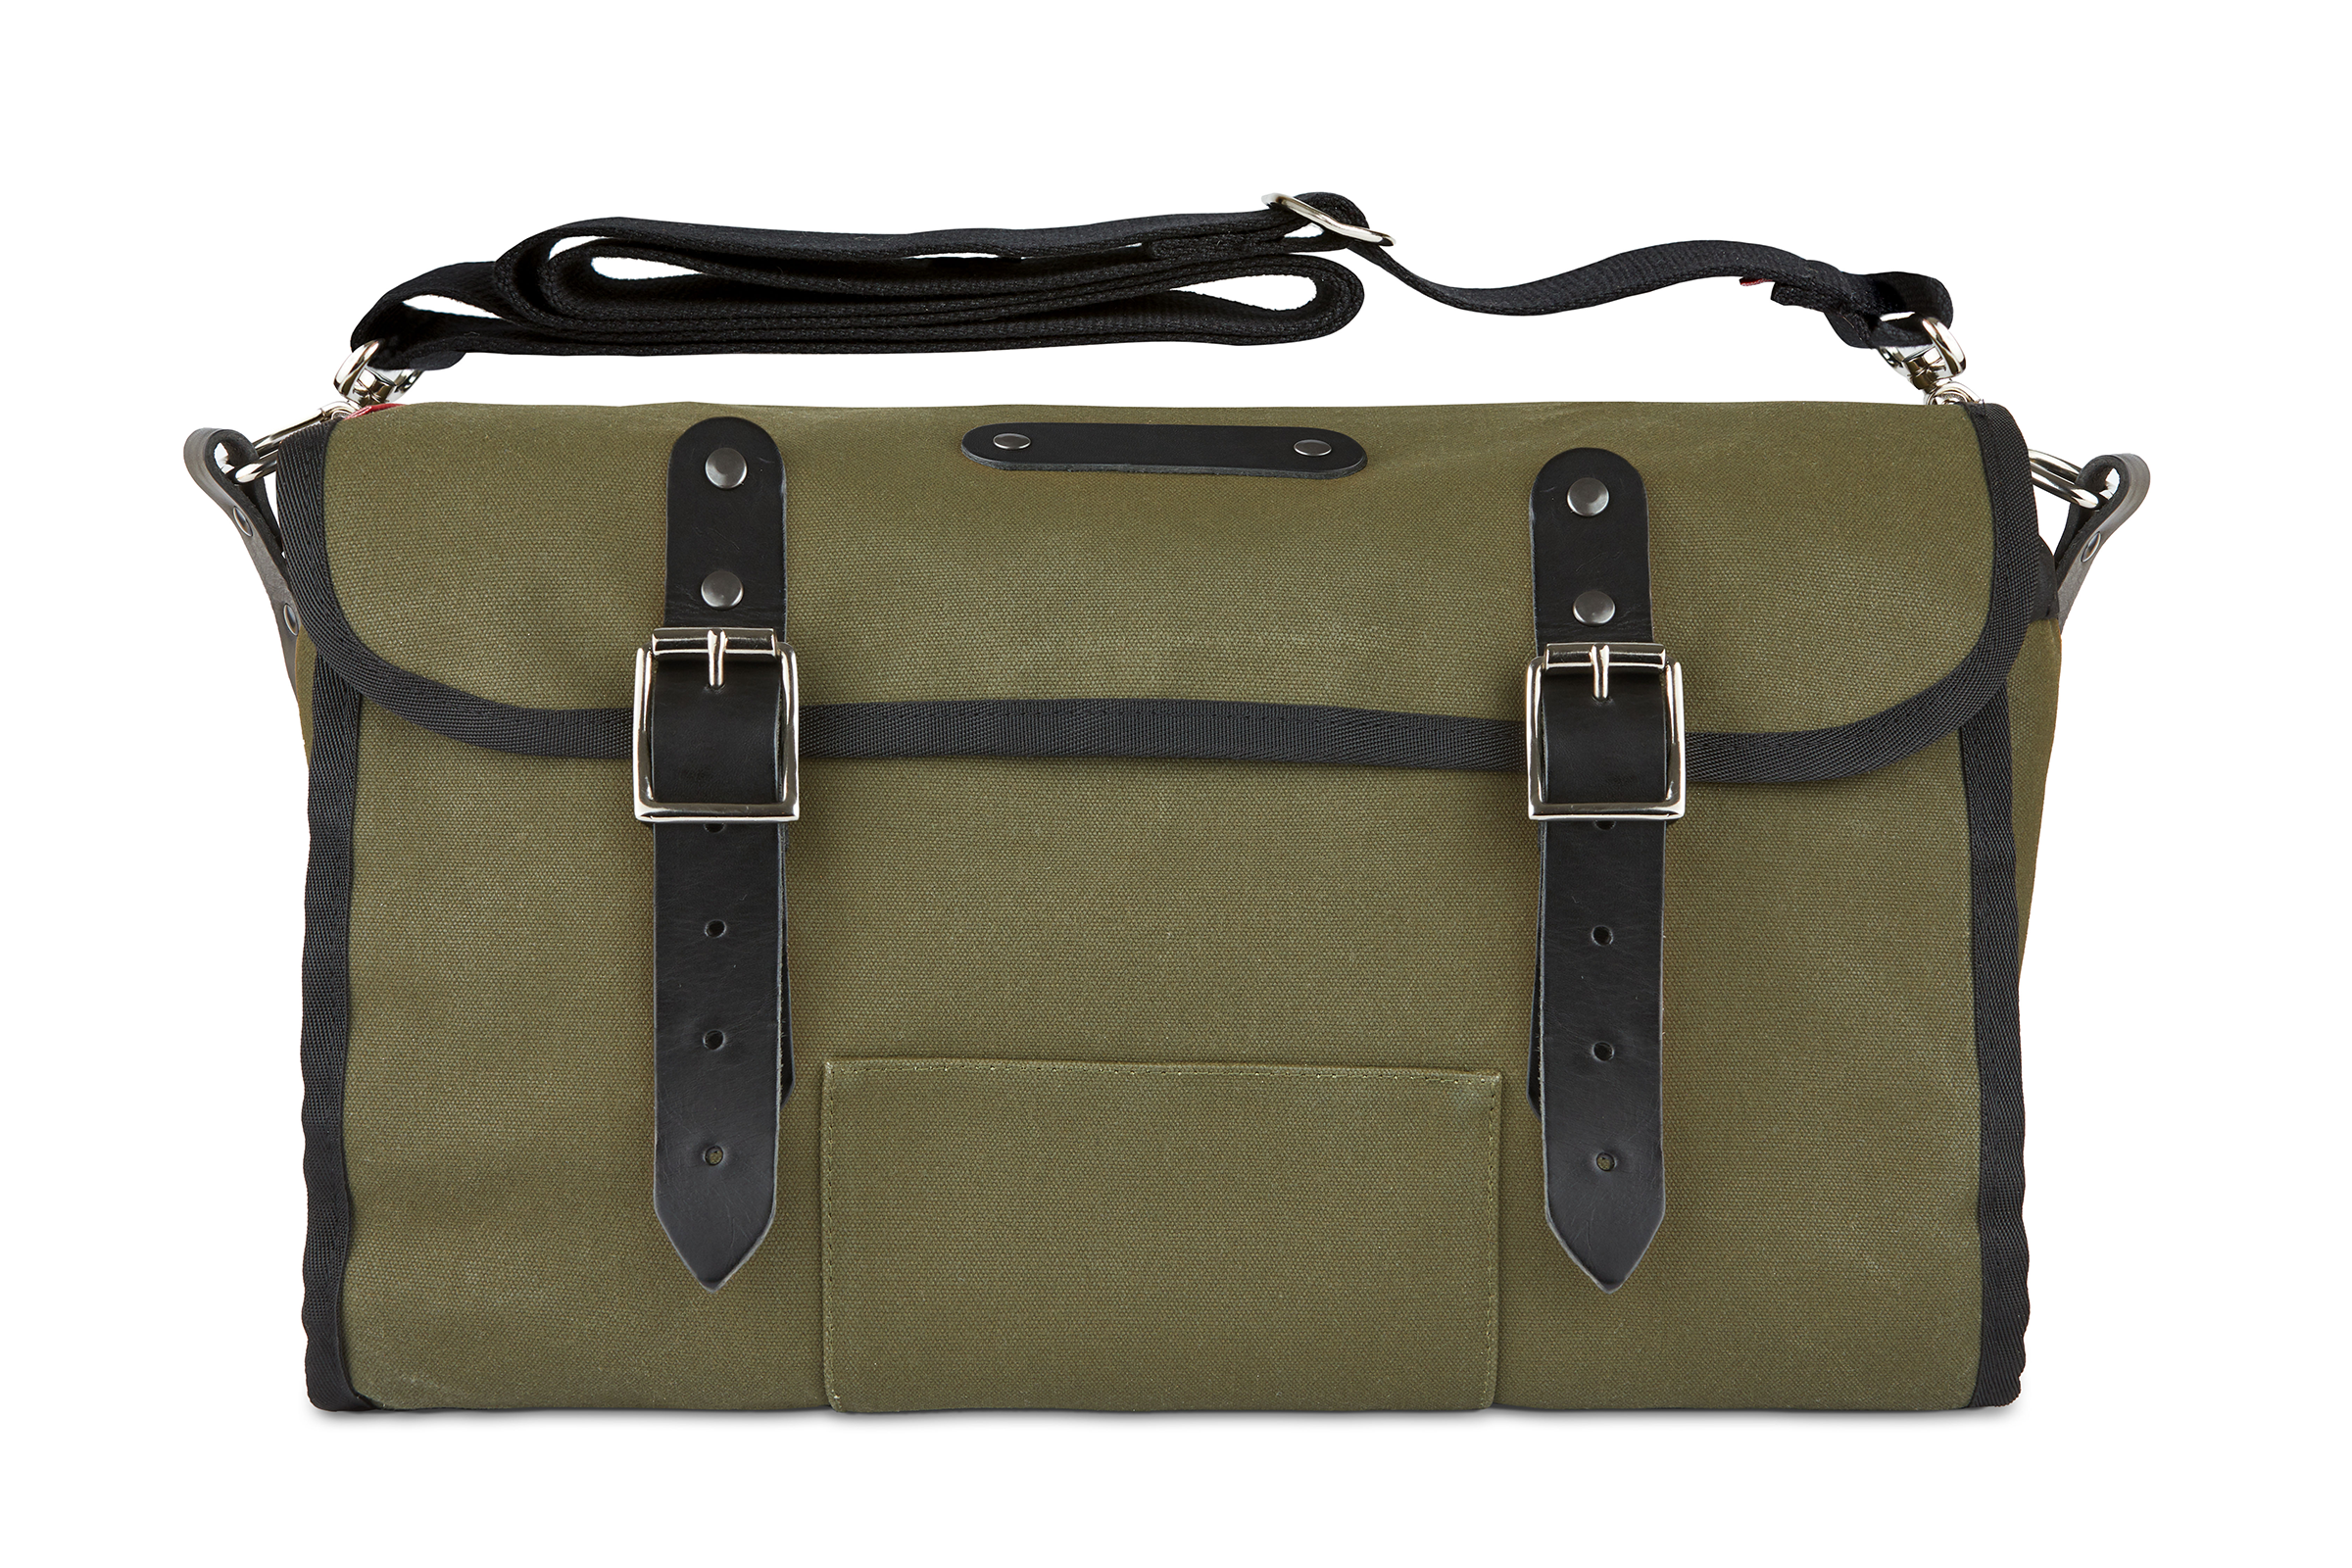 The Otis, 16L, Saddle Bag - Dark Green Canvas, Black Leather